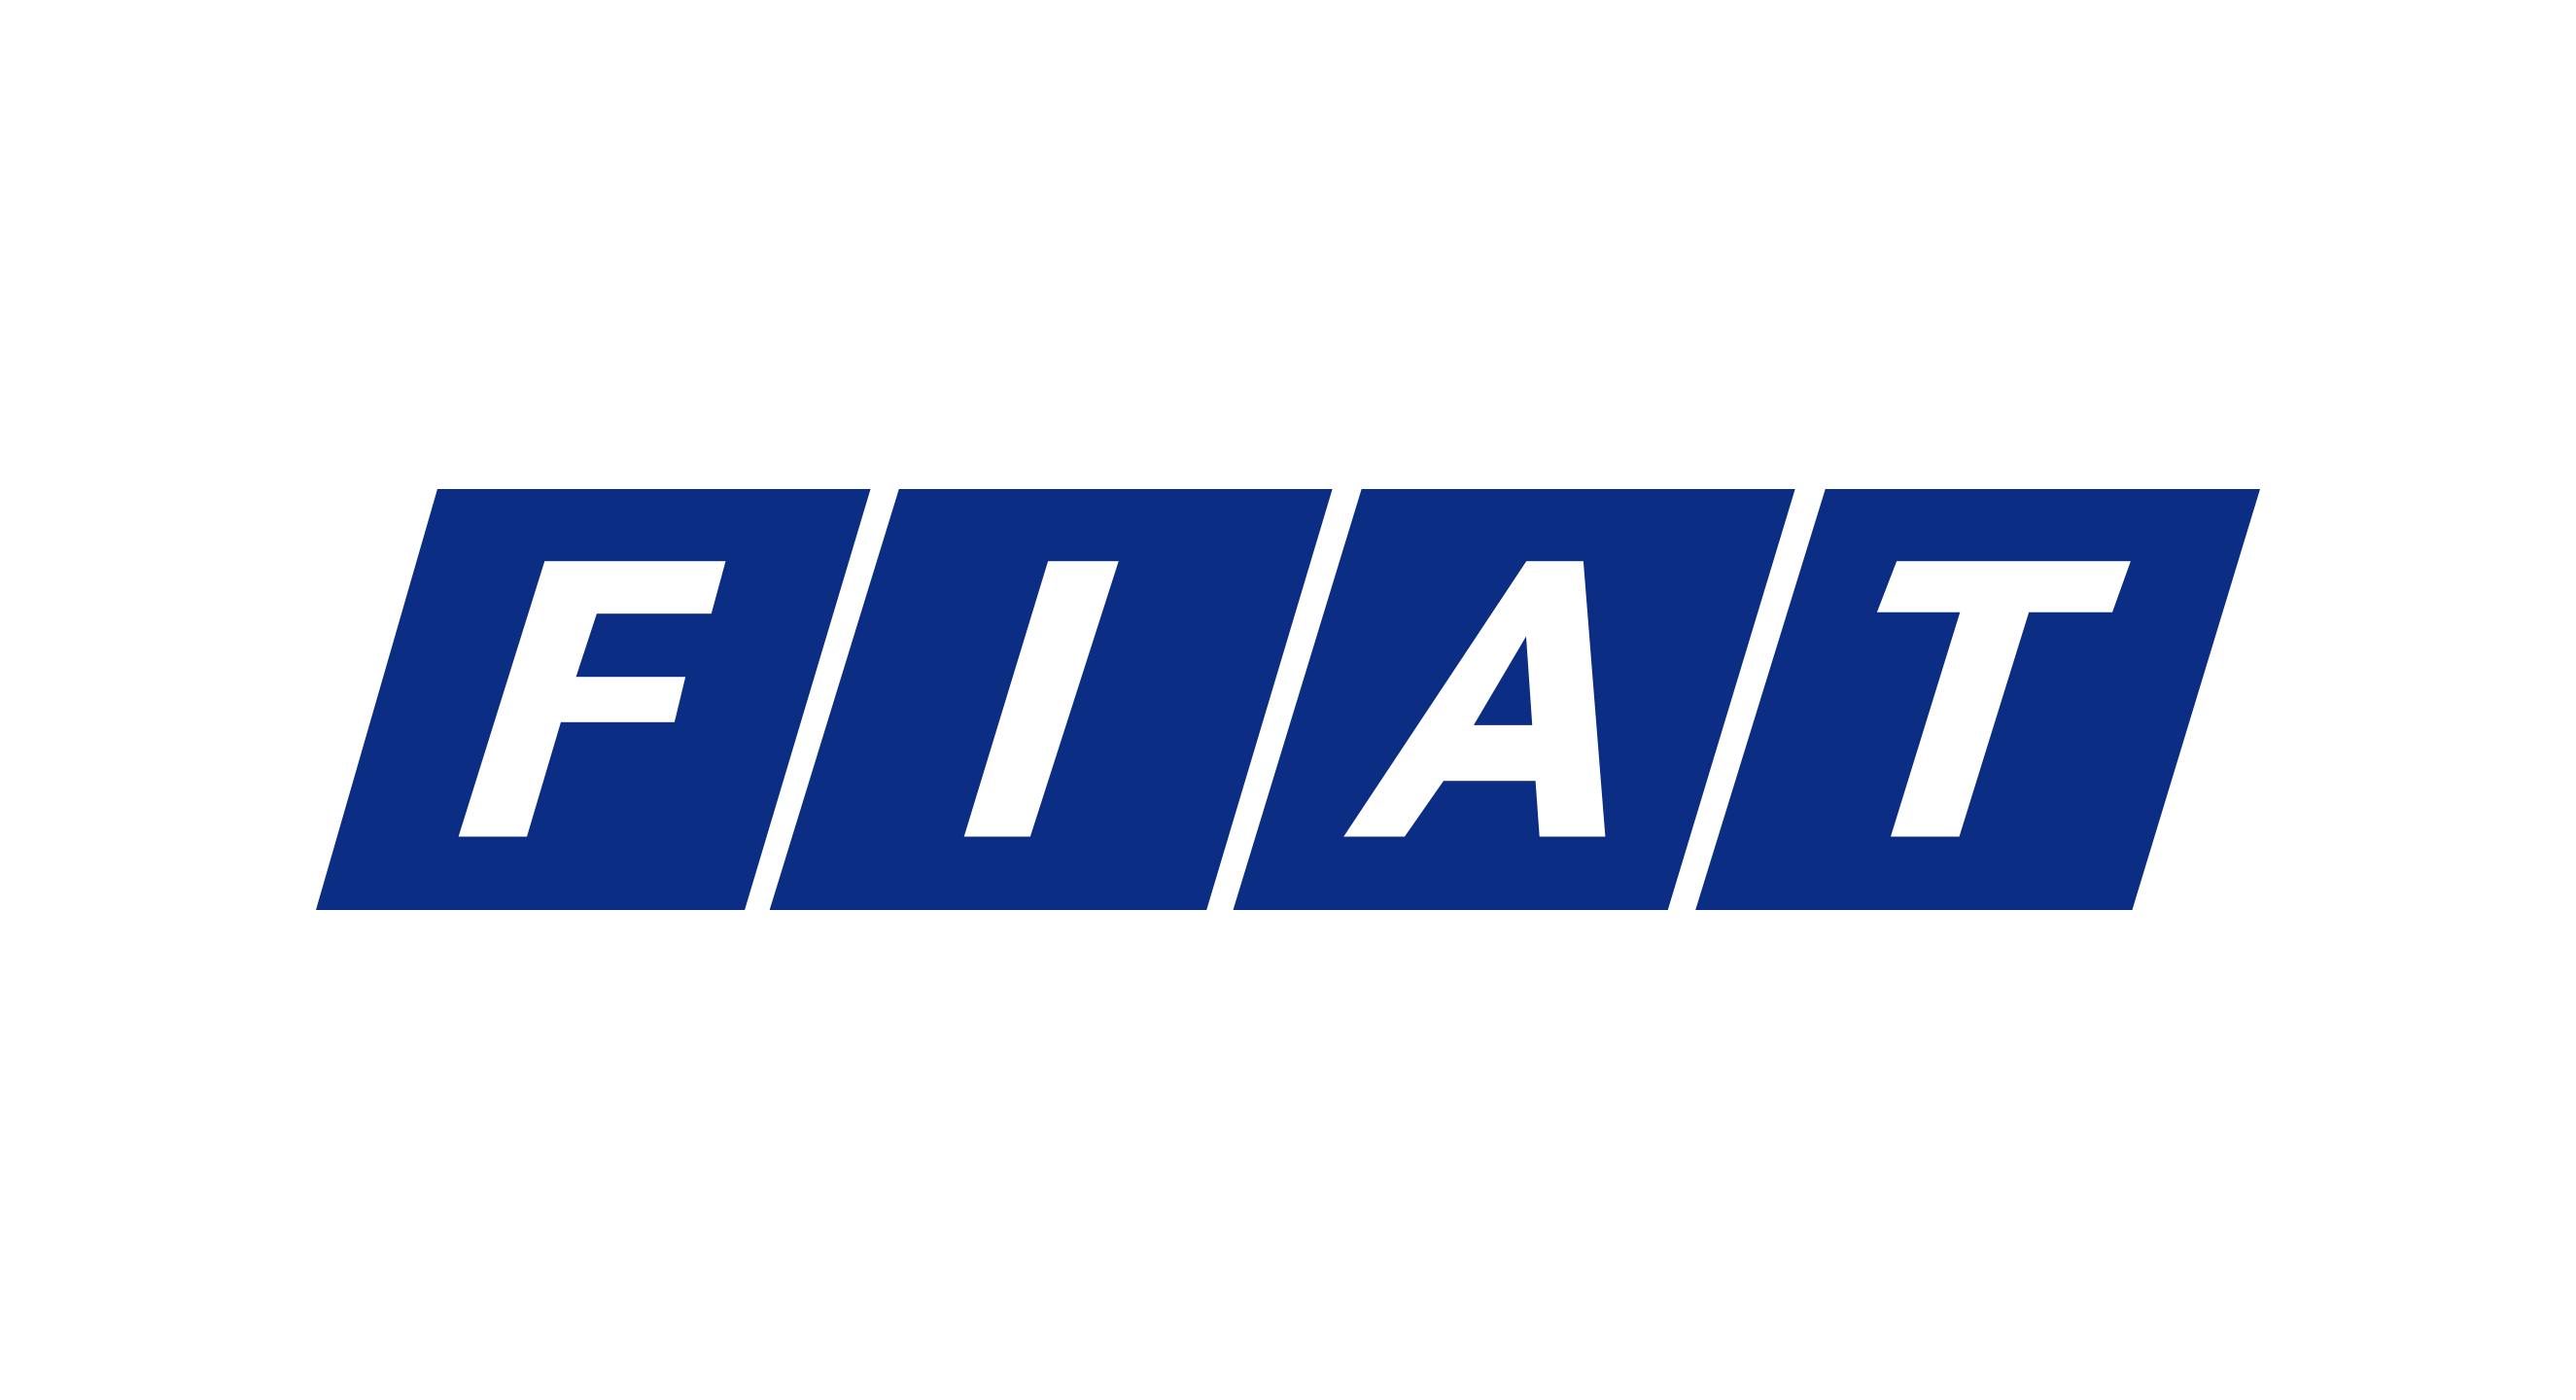 Download Fiat Logo Clipart HQ PNG Image.